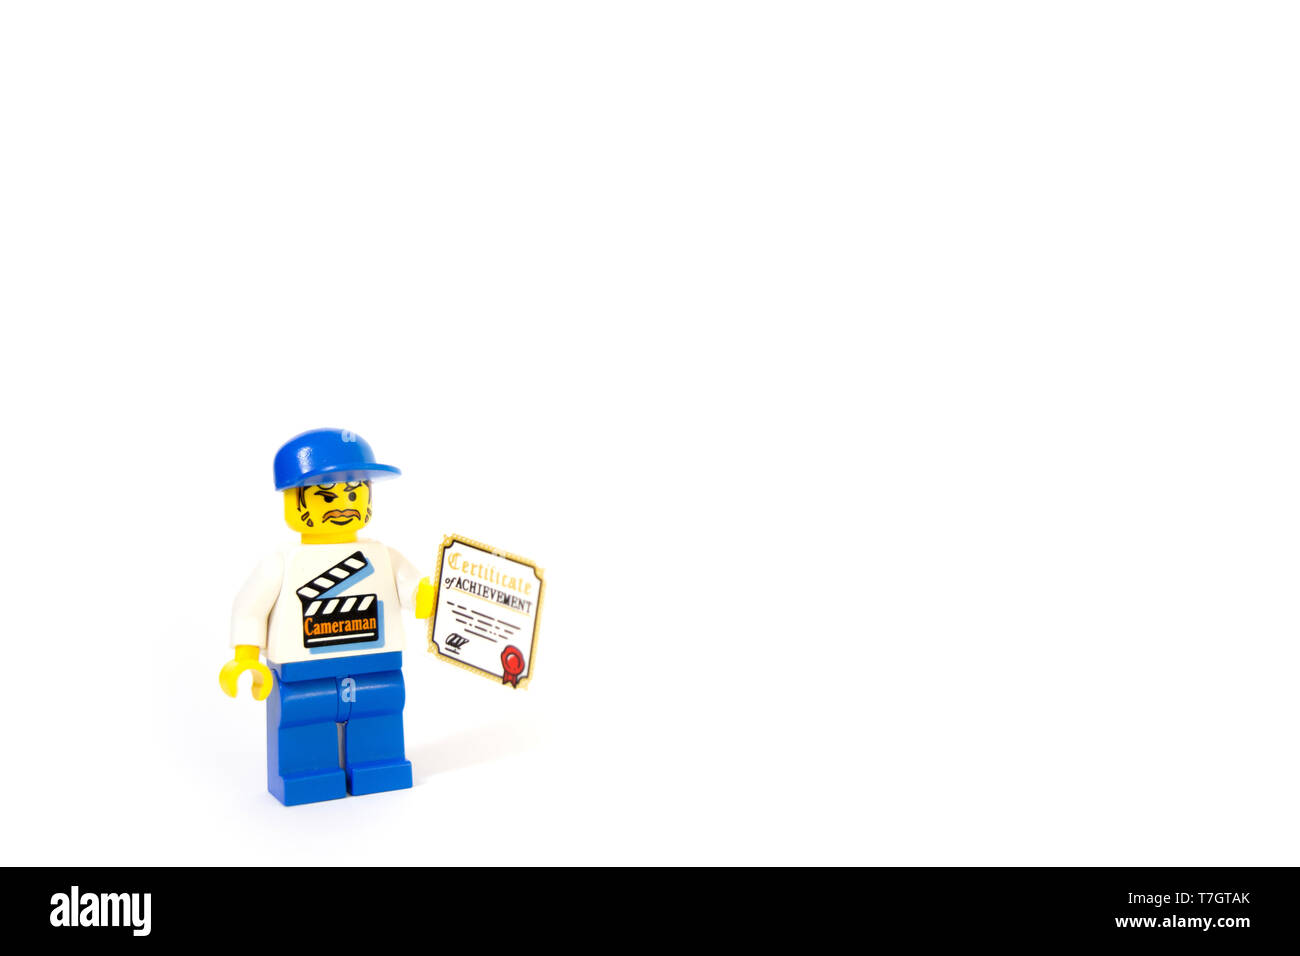 A LEGO film maker holding a certificate of Achievement, this cameraman progressing his career. - Stock Image